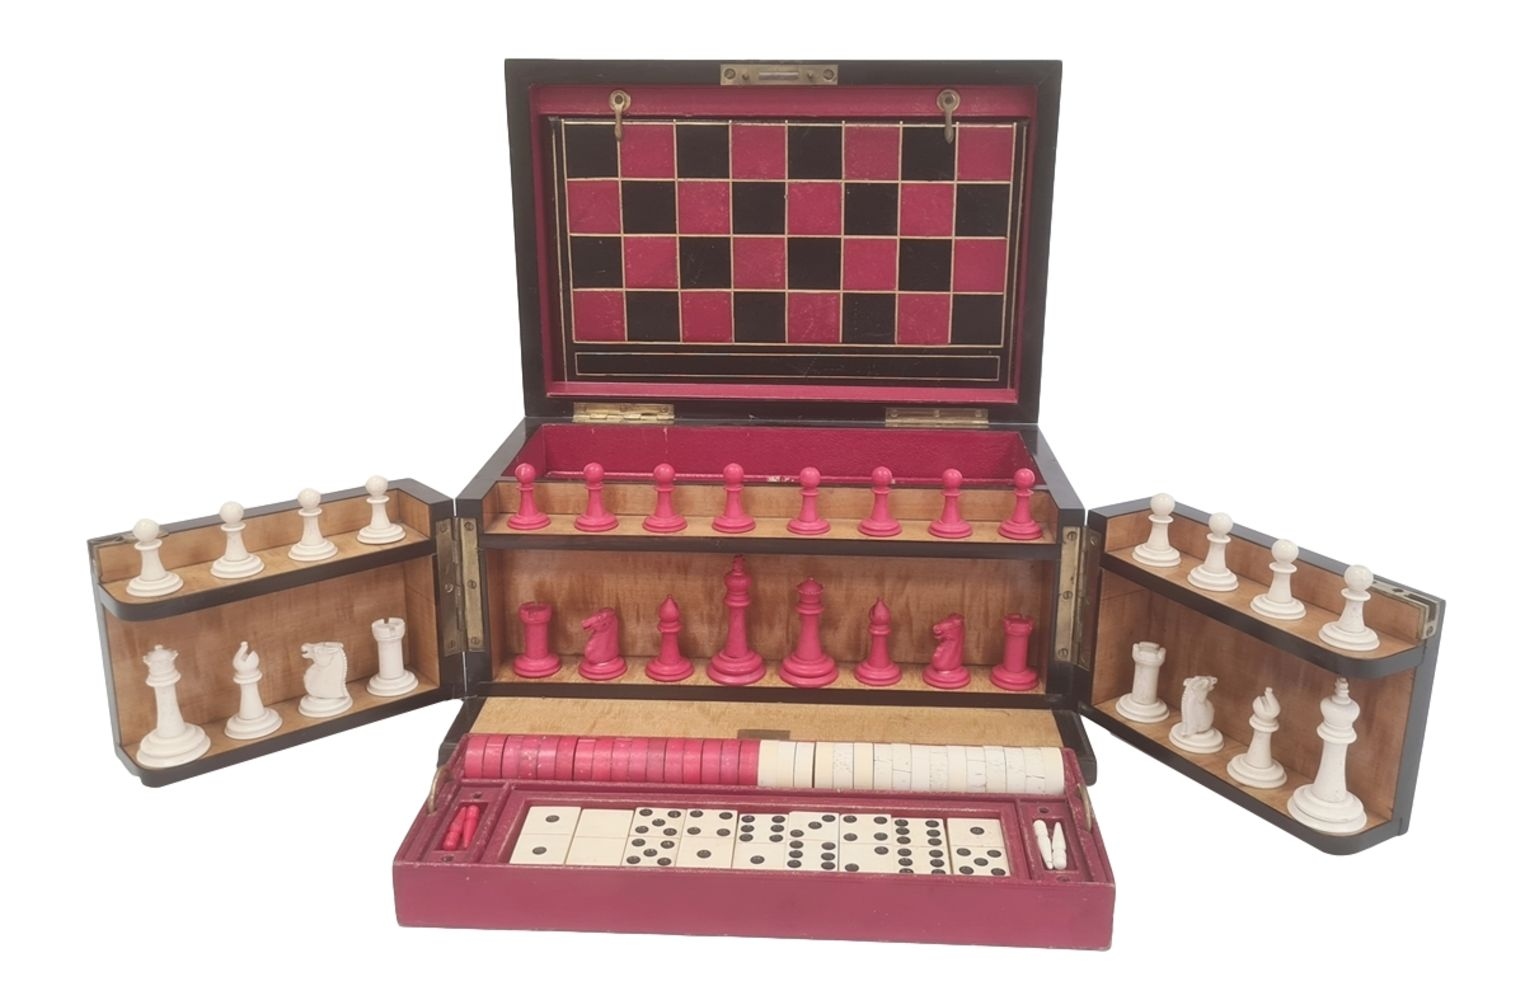 Toys, Dolls, Models, Antiques & Interiors (Cirencester) - Two Day Sale - Cotswold Auction Company